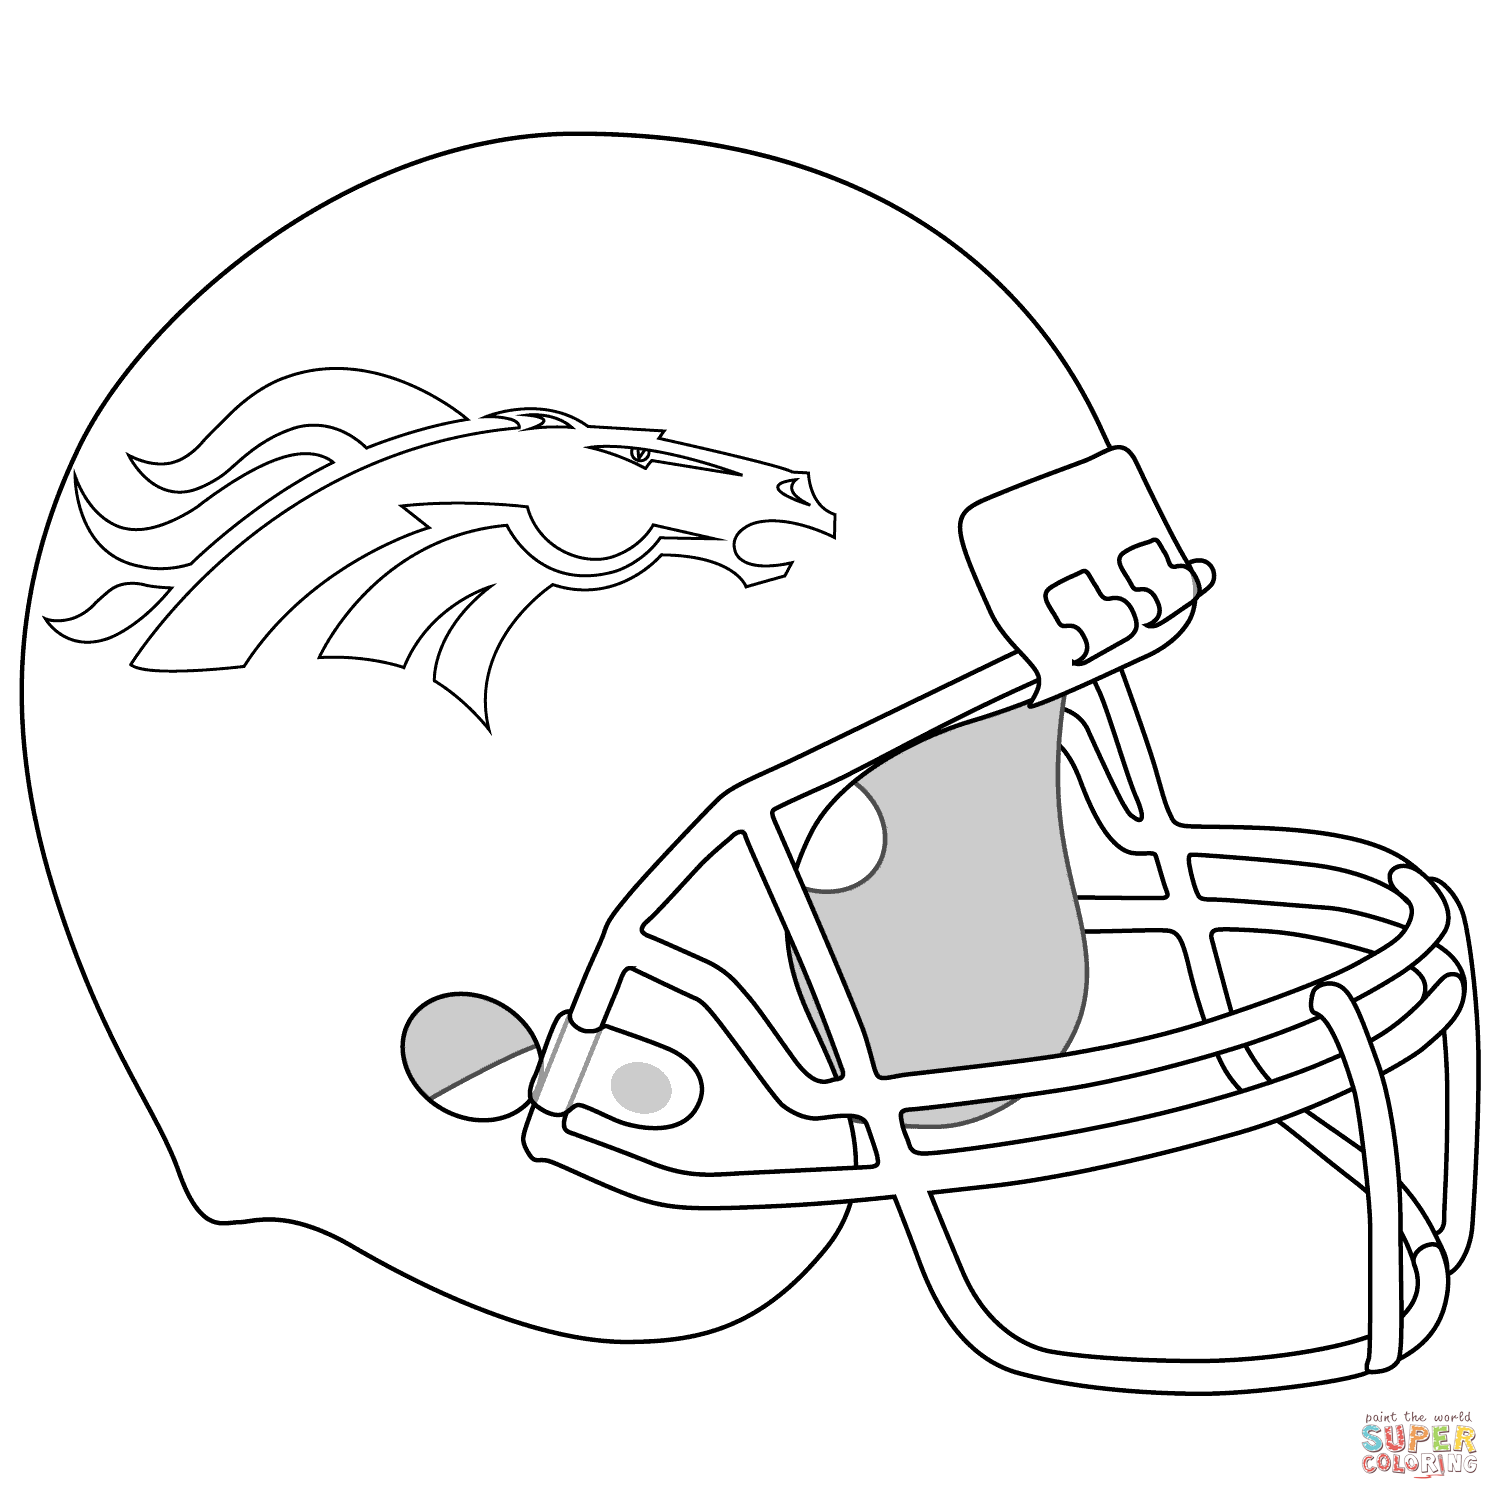 1500x1500 Seahawks Football Russell Wilson Jersey Coloring Pages Many